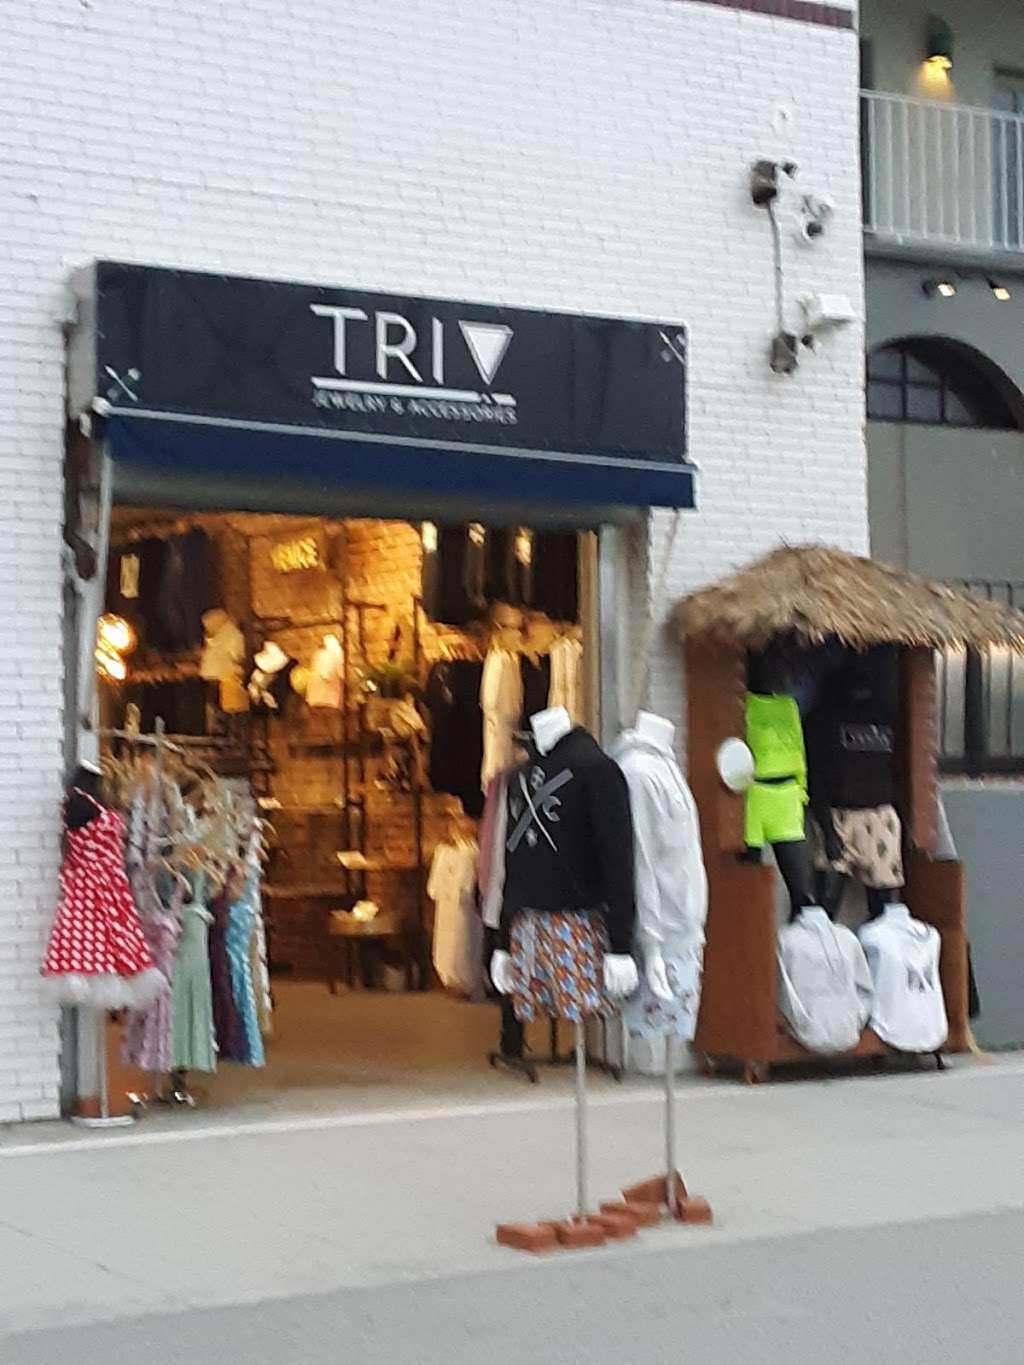 TRI ! Jewelry and accessories - clothing store  | Photo 3 of 3 | Address: 8 Brooks Ave, Venice, CA 90291, USA | Phone: (424) 645-2678